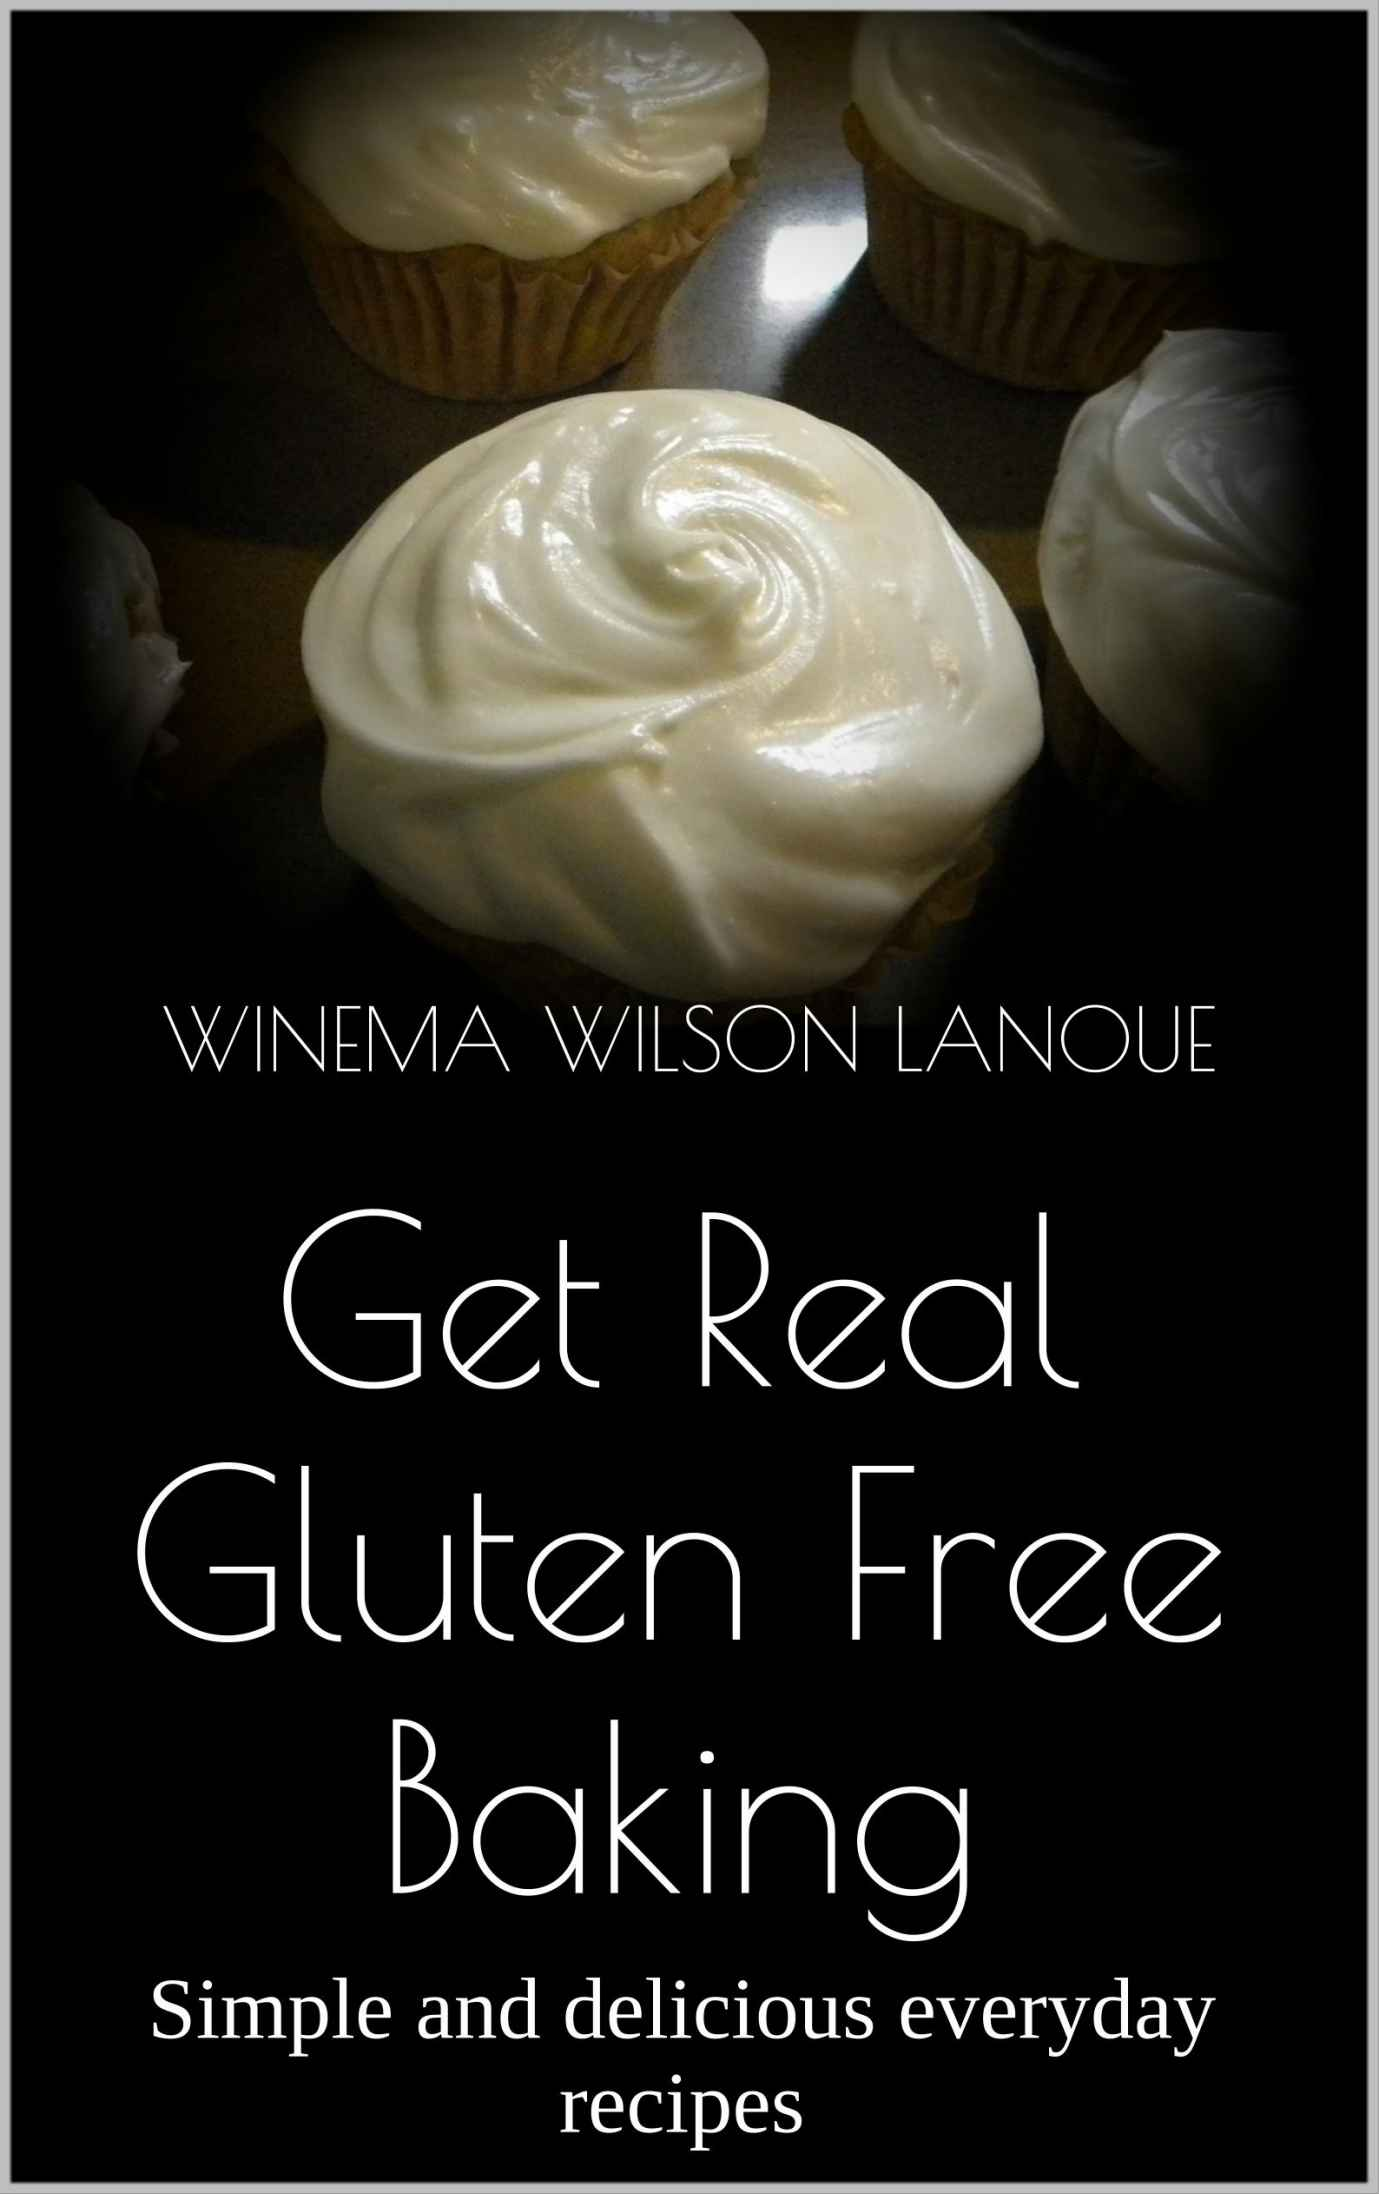 Get real gluten-free baking recipes